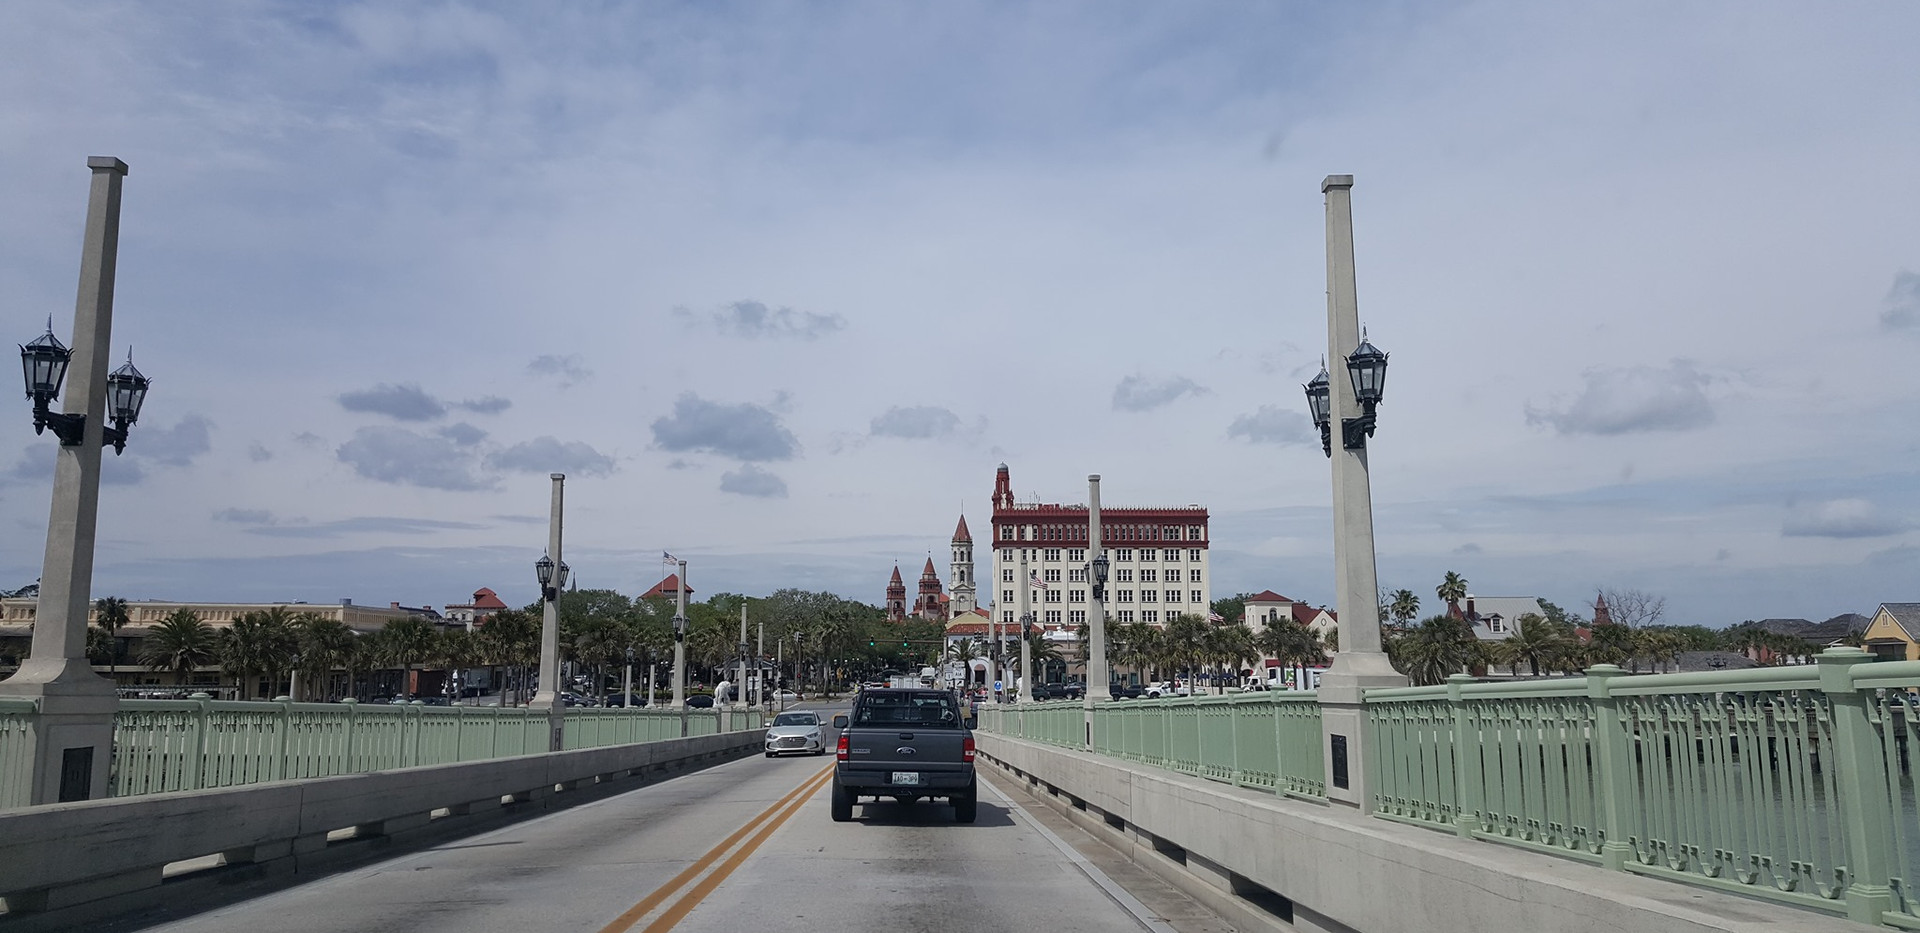 Heading to St.Augustine